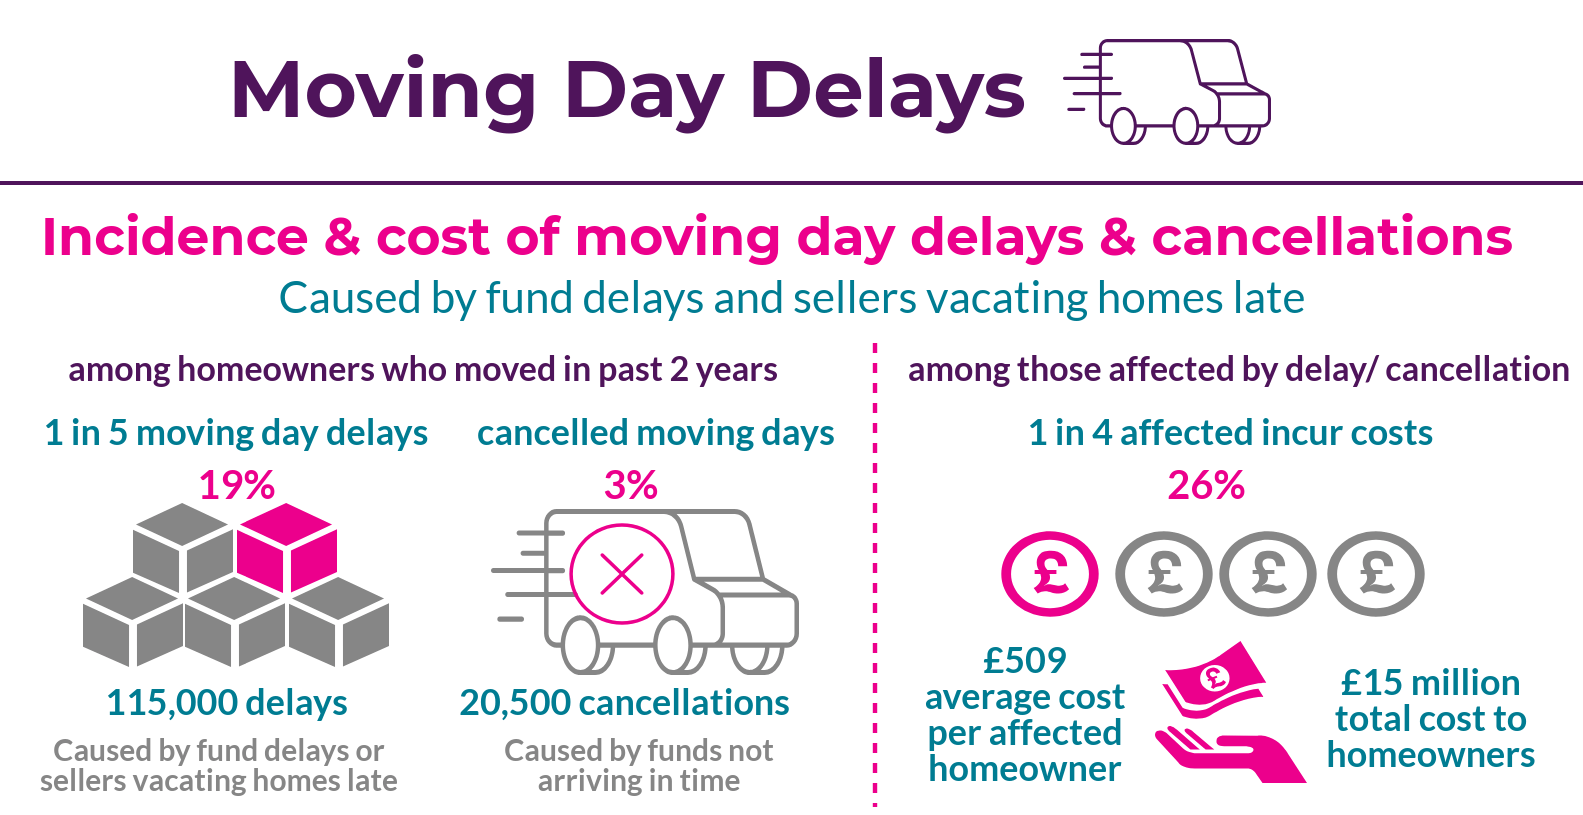 Moving Day Delays